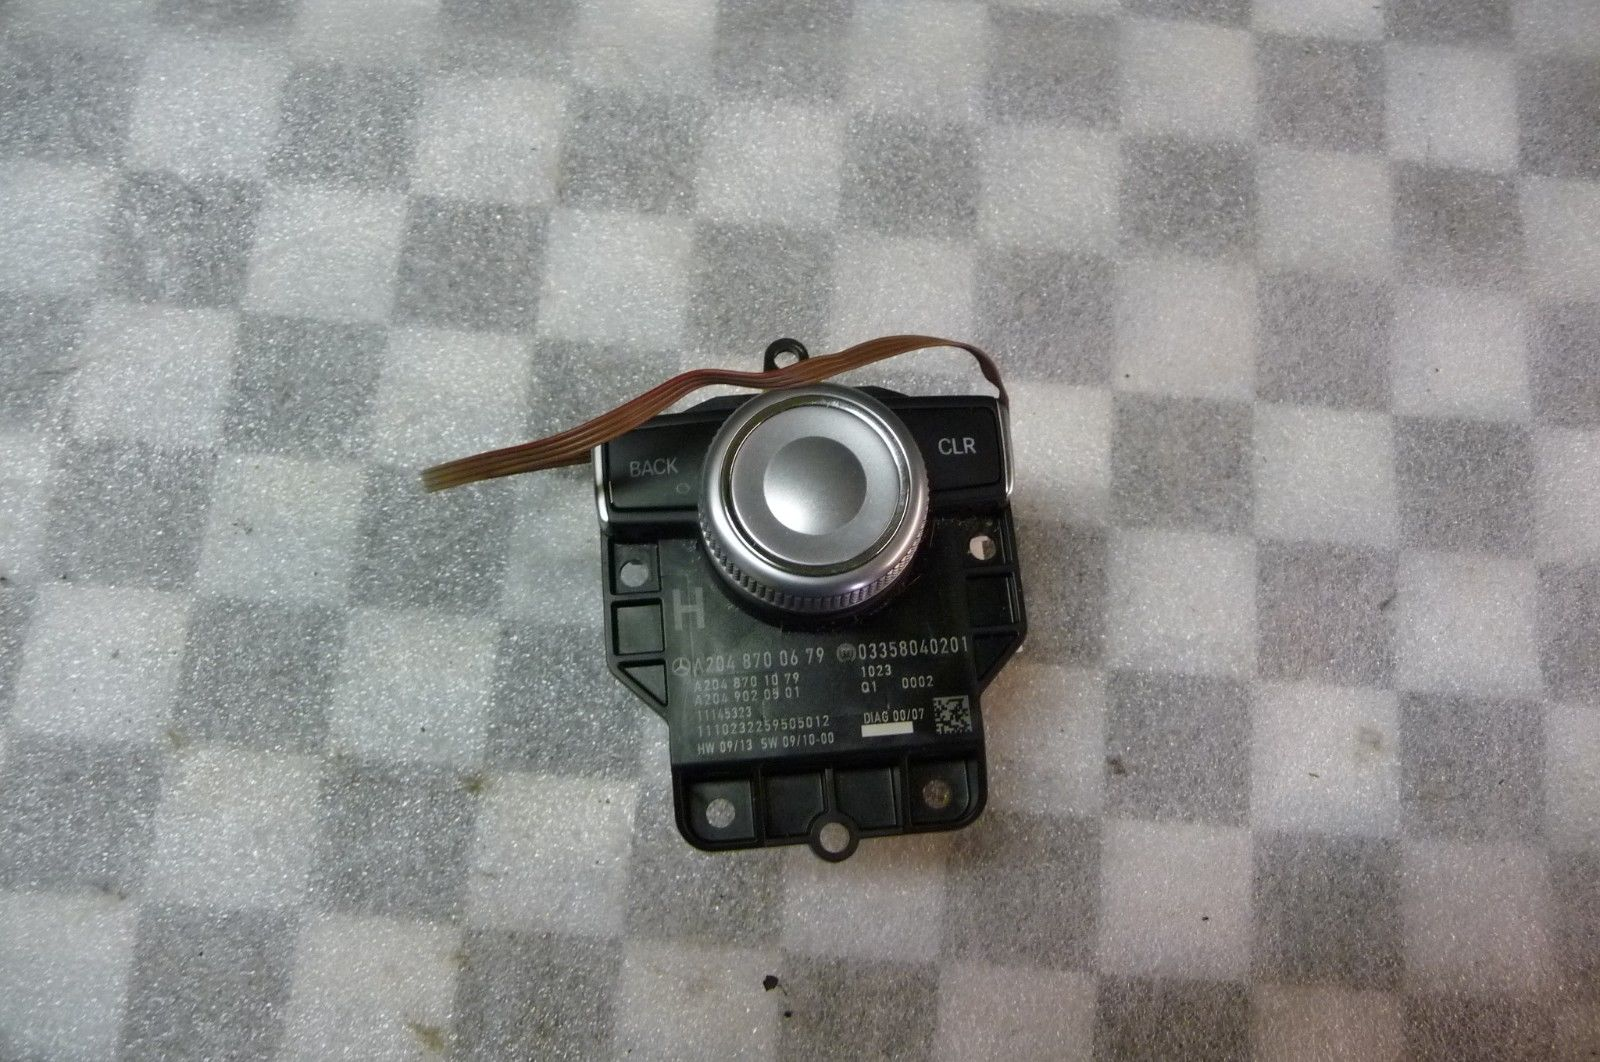 Mercedes Benz C Class Audio Command Control Push Button Switch A2048700679 OEM